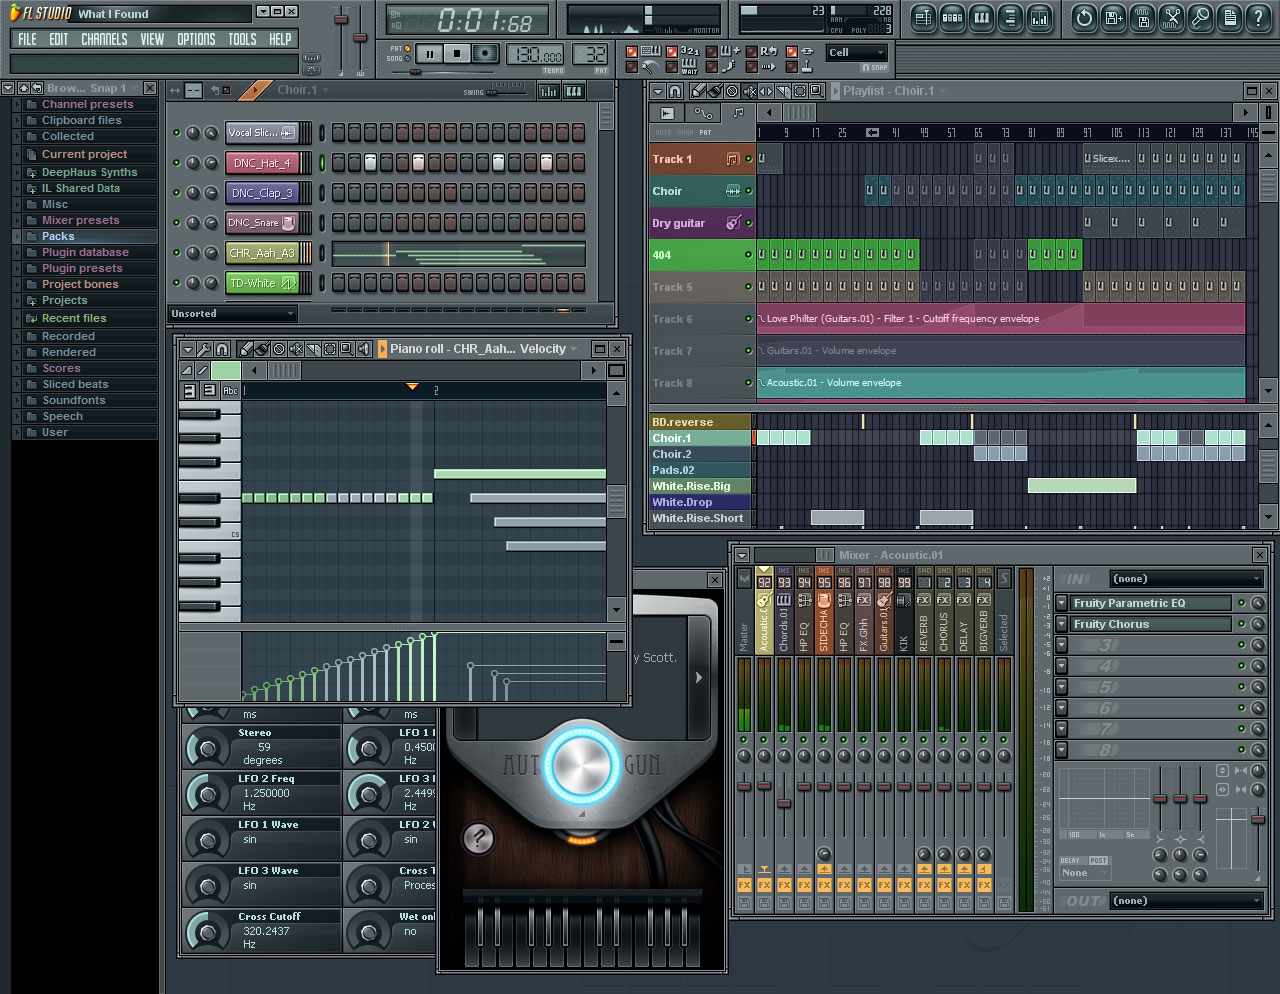 Fruity Loops 10 Producer Edition